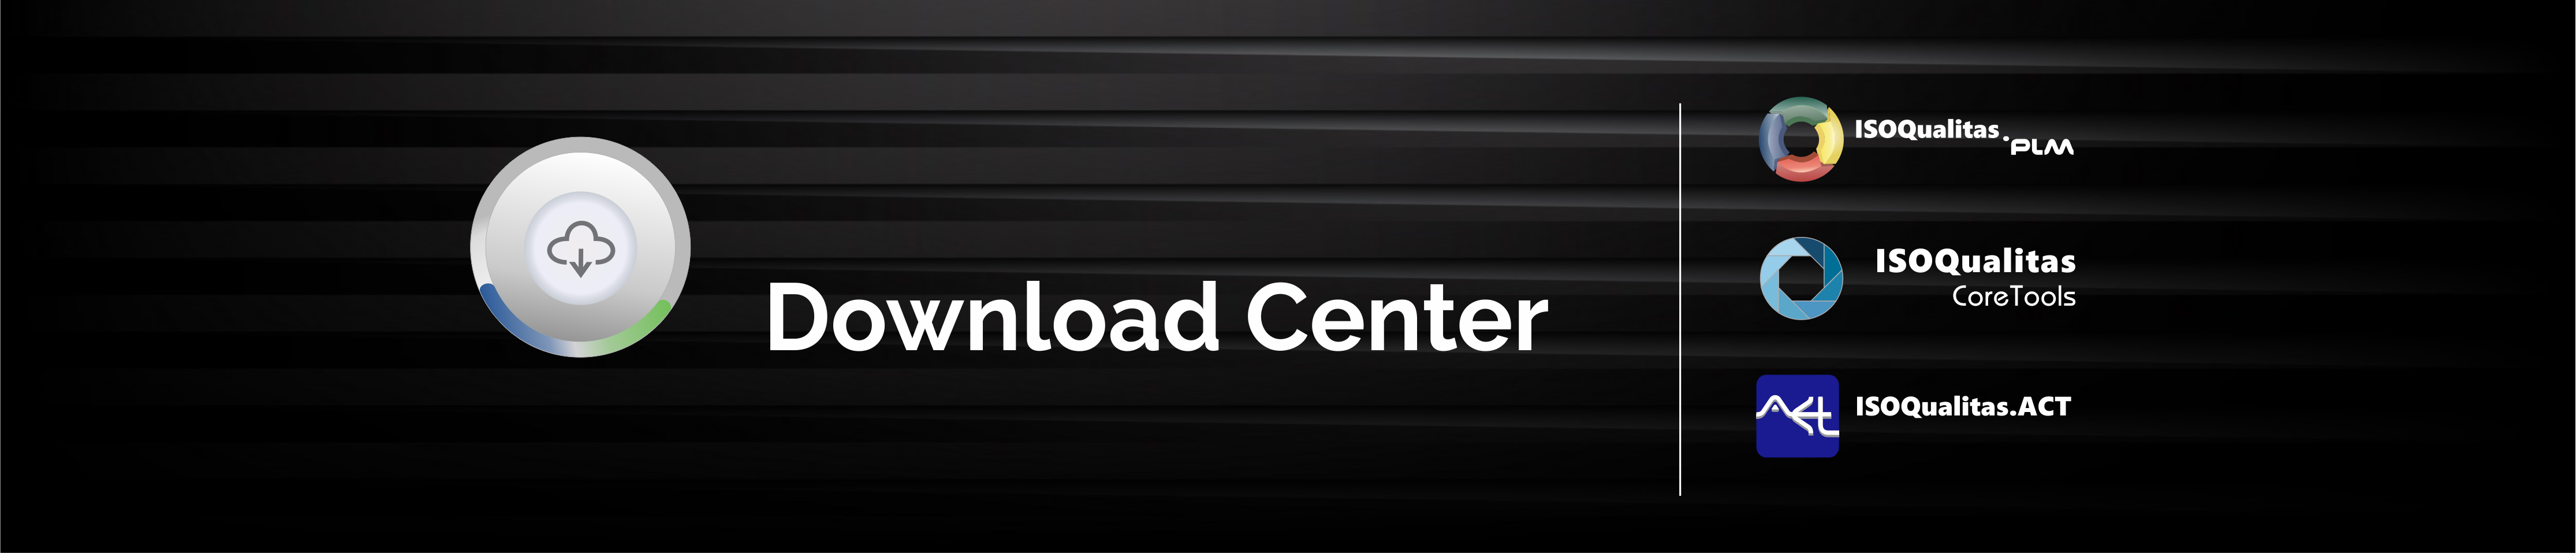 DownloadCenter2